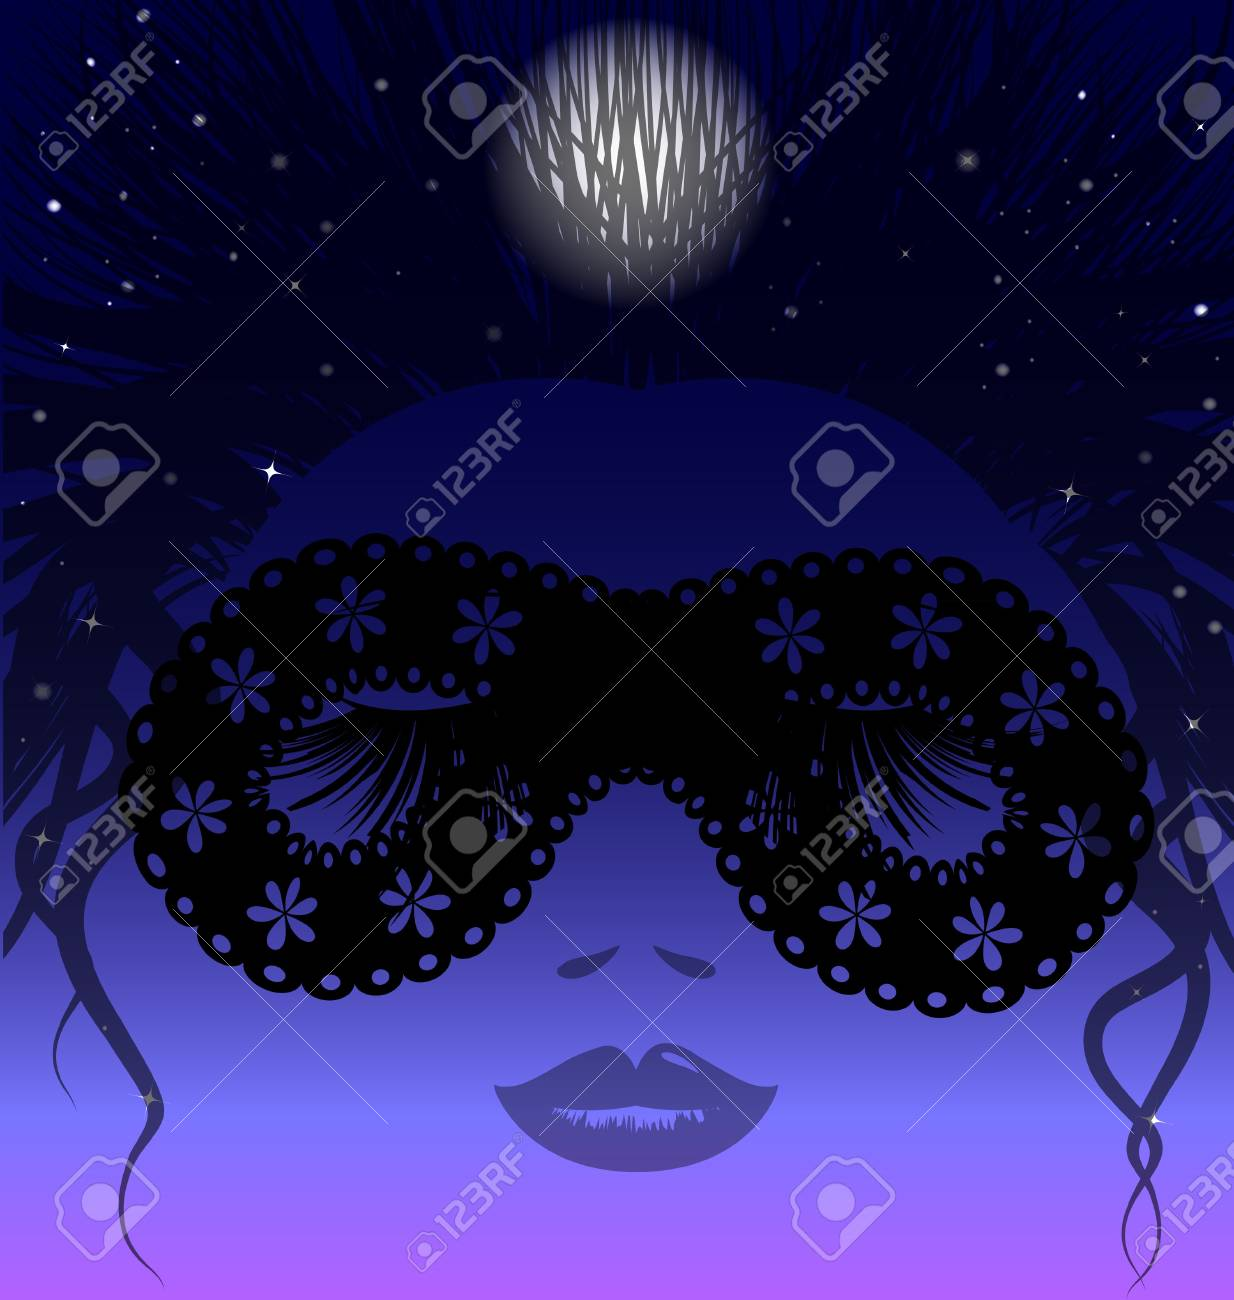 sleepy night in the image of a woman's face in a black half-mask Stock Vector - 9920825